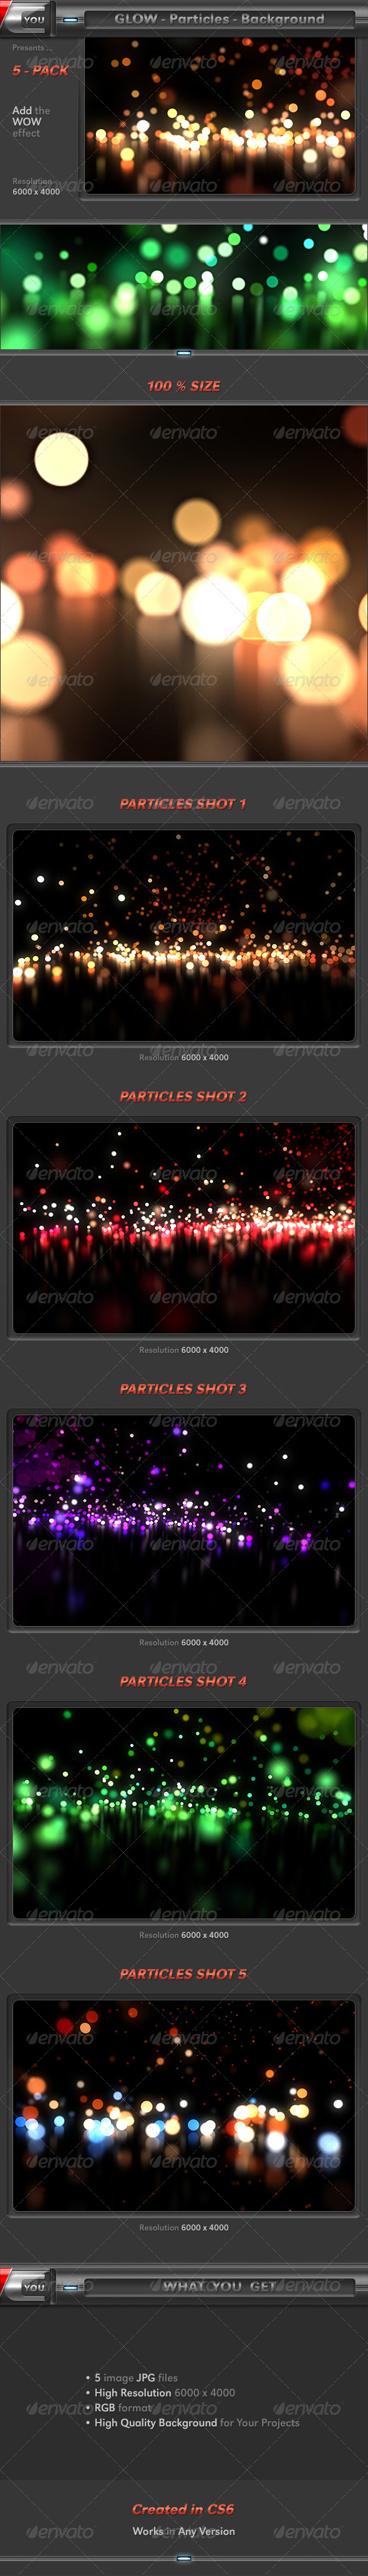 Glow Particles Pack - Abstract Backgrounds